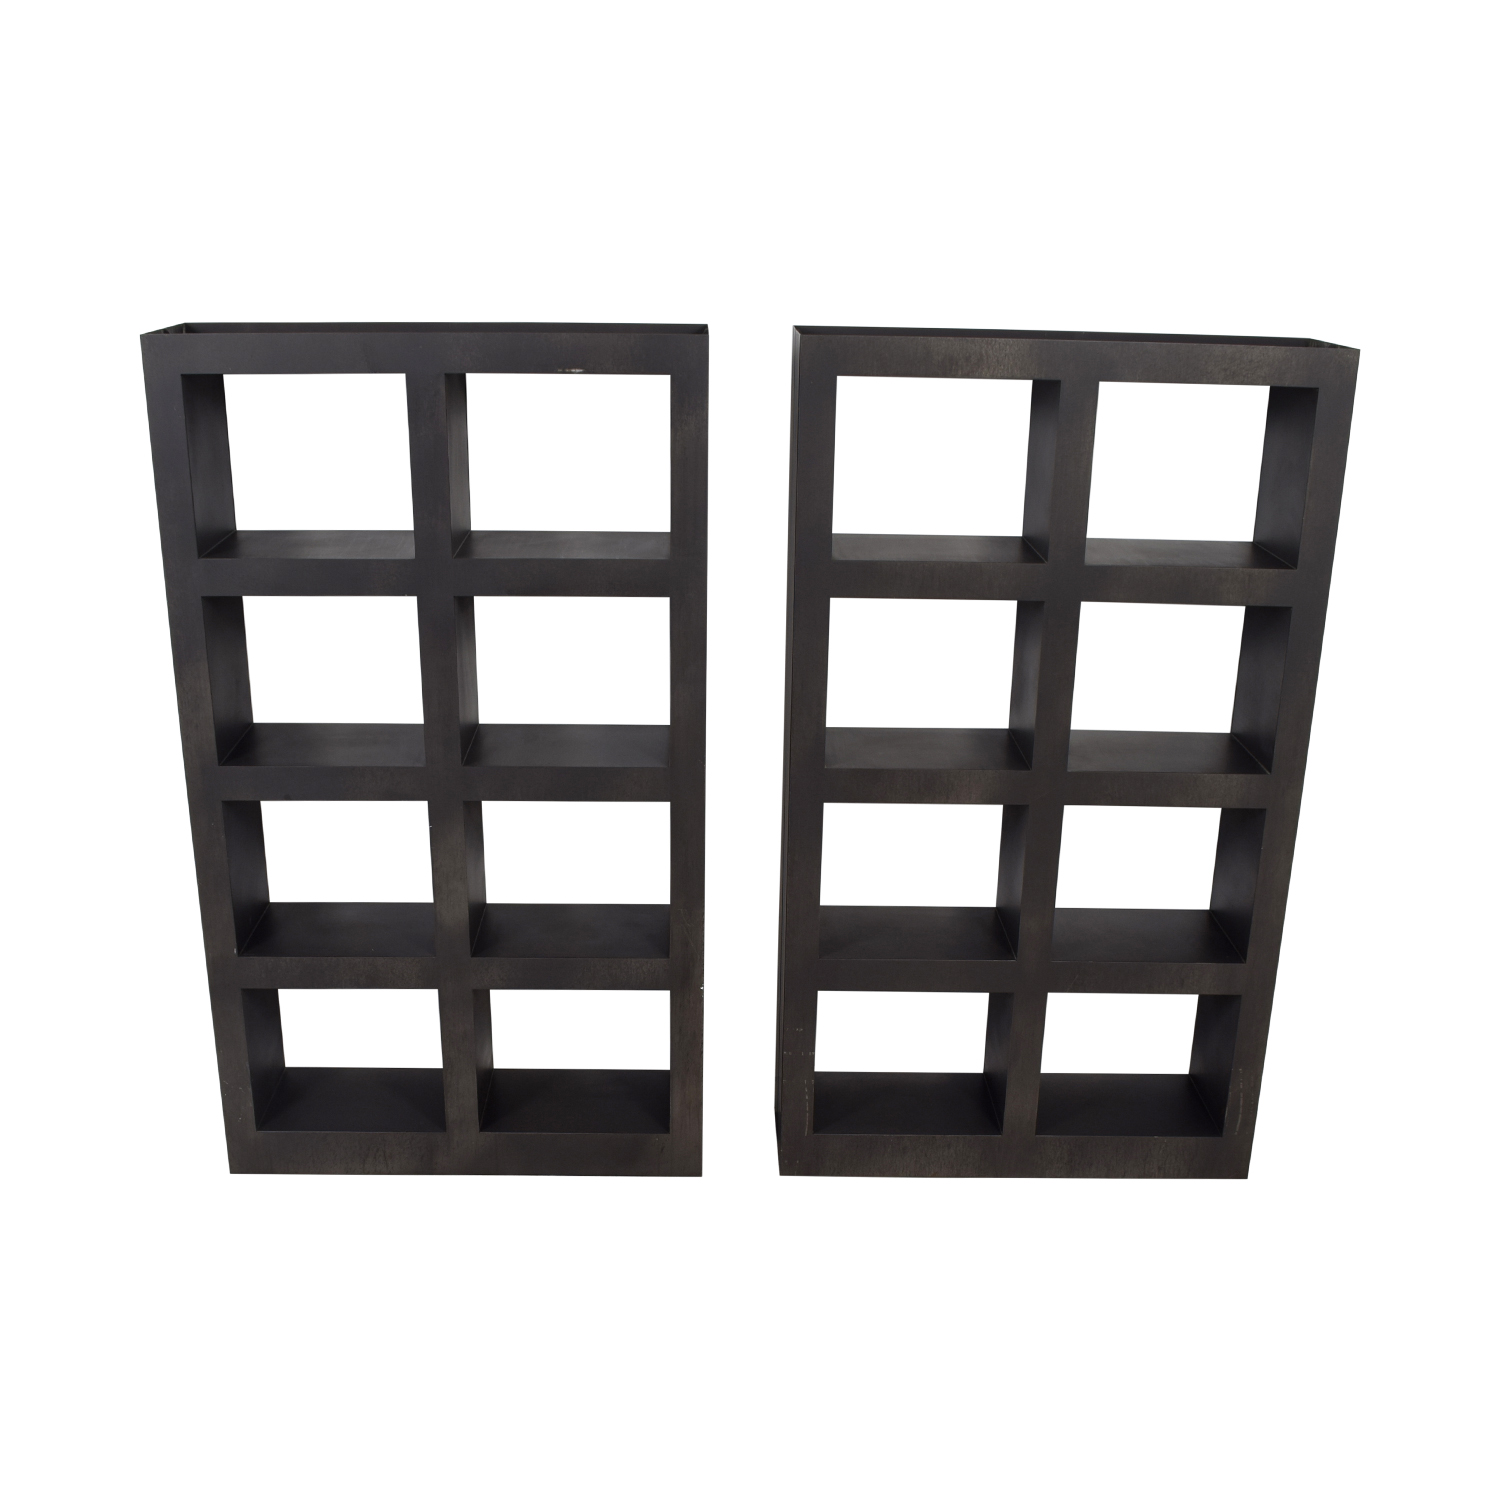 Crate & Barrel Crate & Barrel Box Tower Shelves on sale